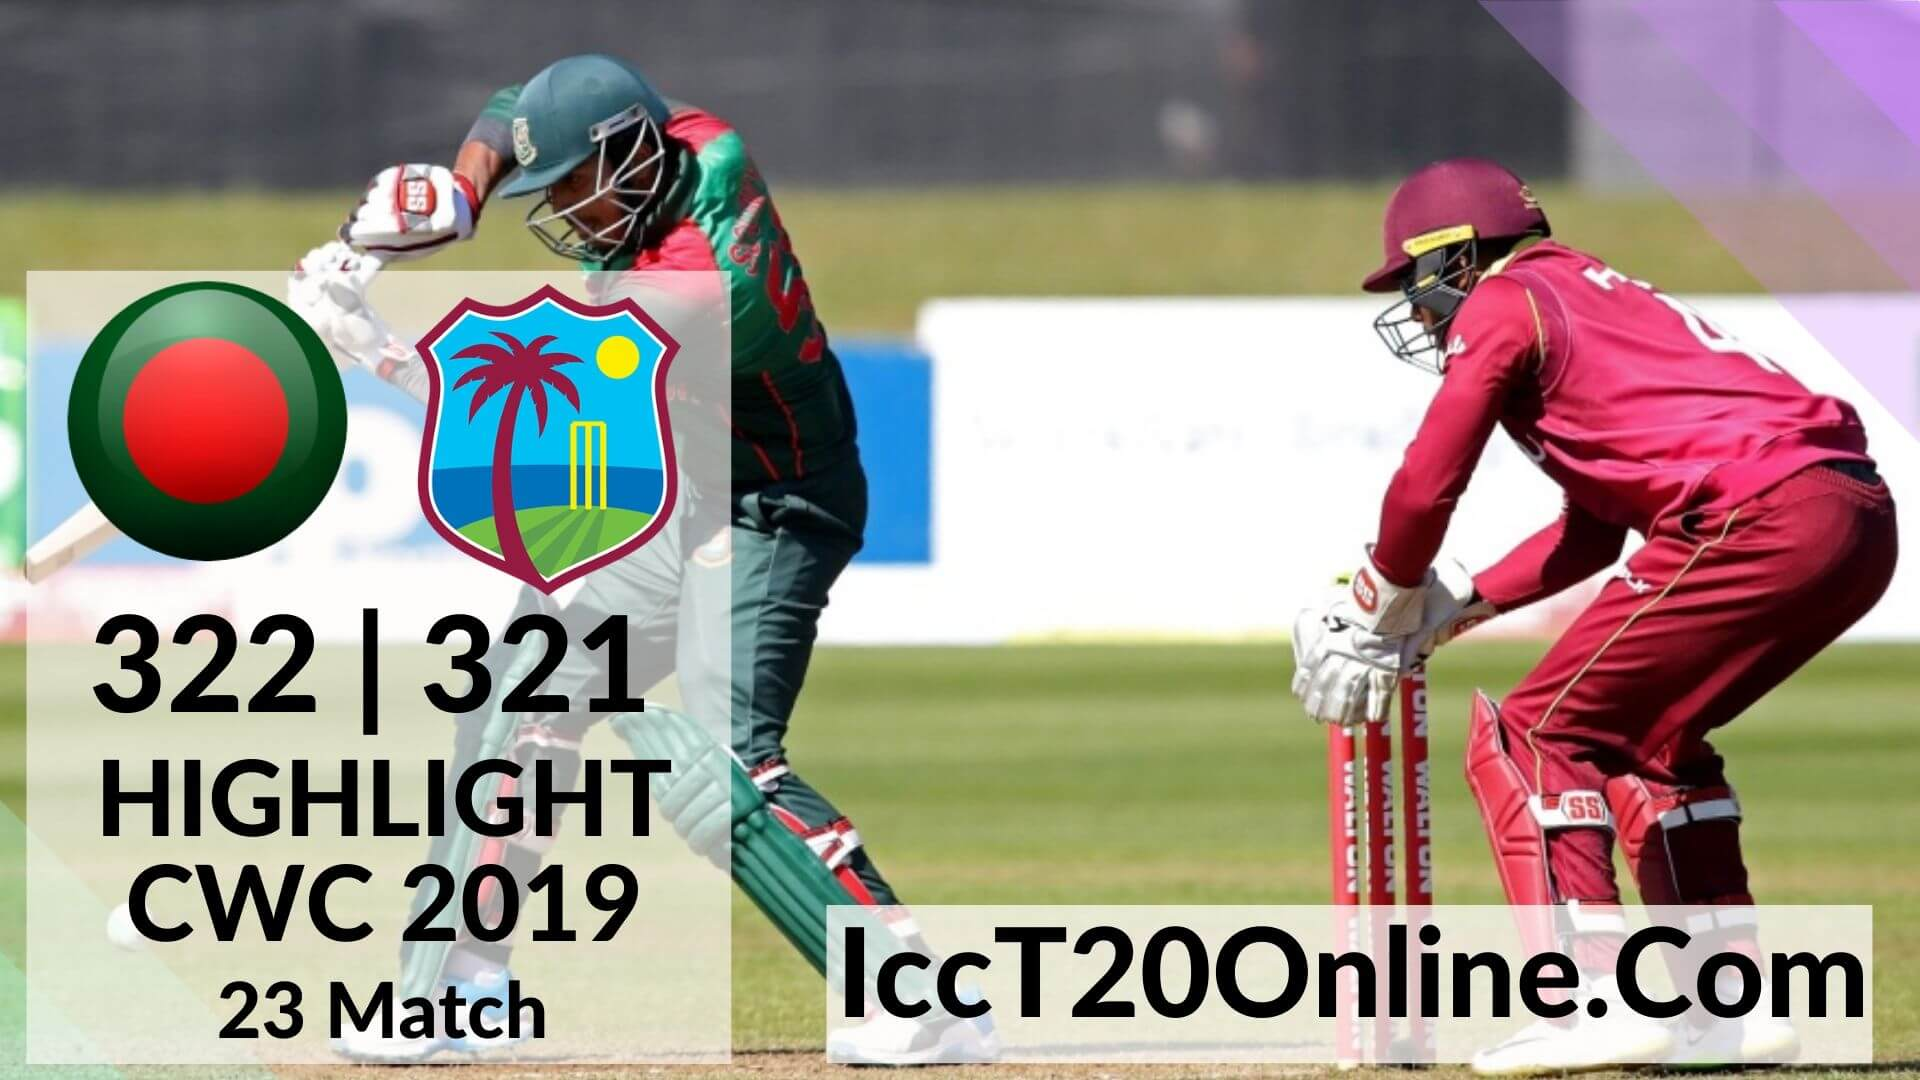 Bangladesh Vs West Indies Highlights CWC 2019